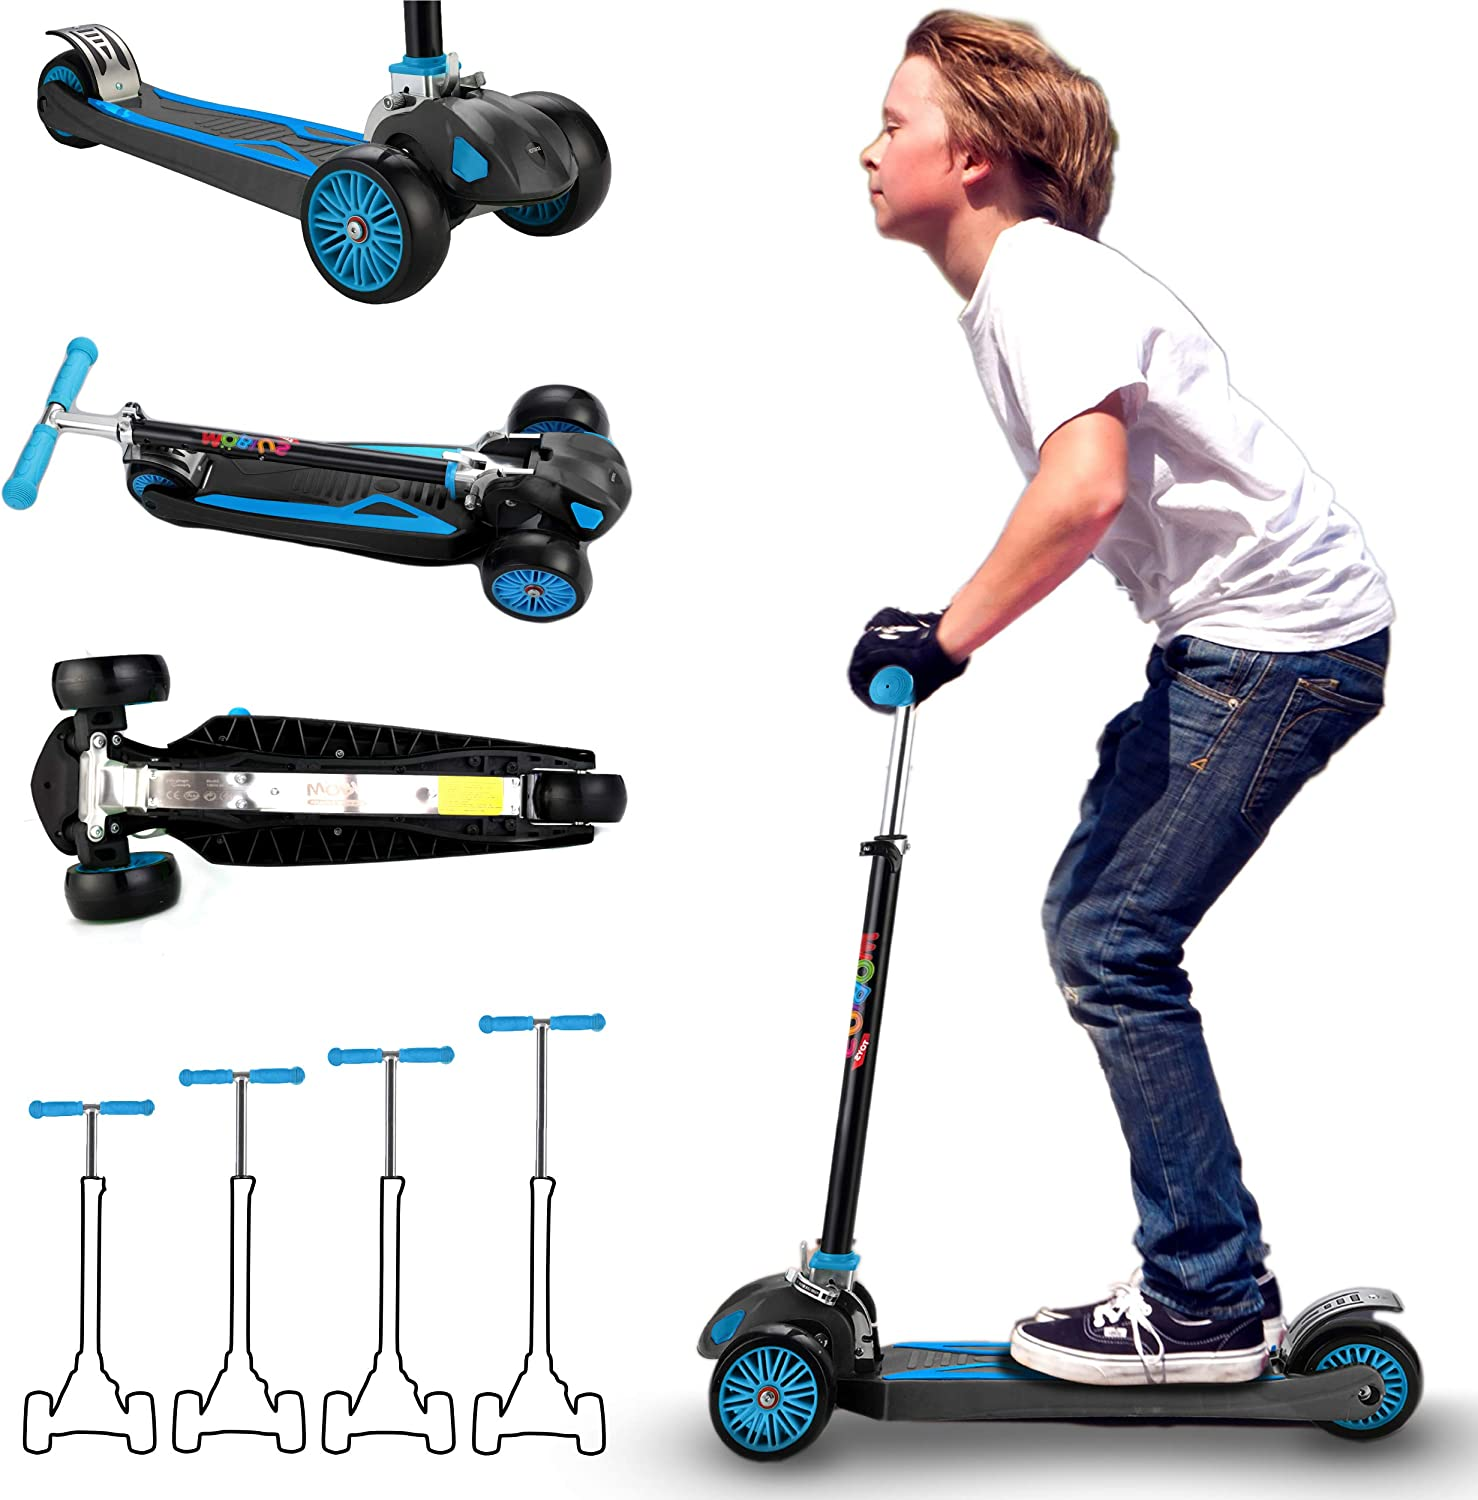 MOBIUS Toys Scooter for Kids, Maxi Foldable Kick Scooter Deluxe